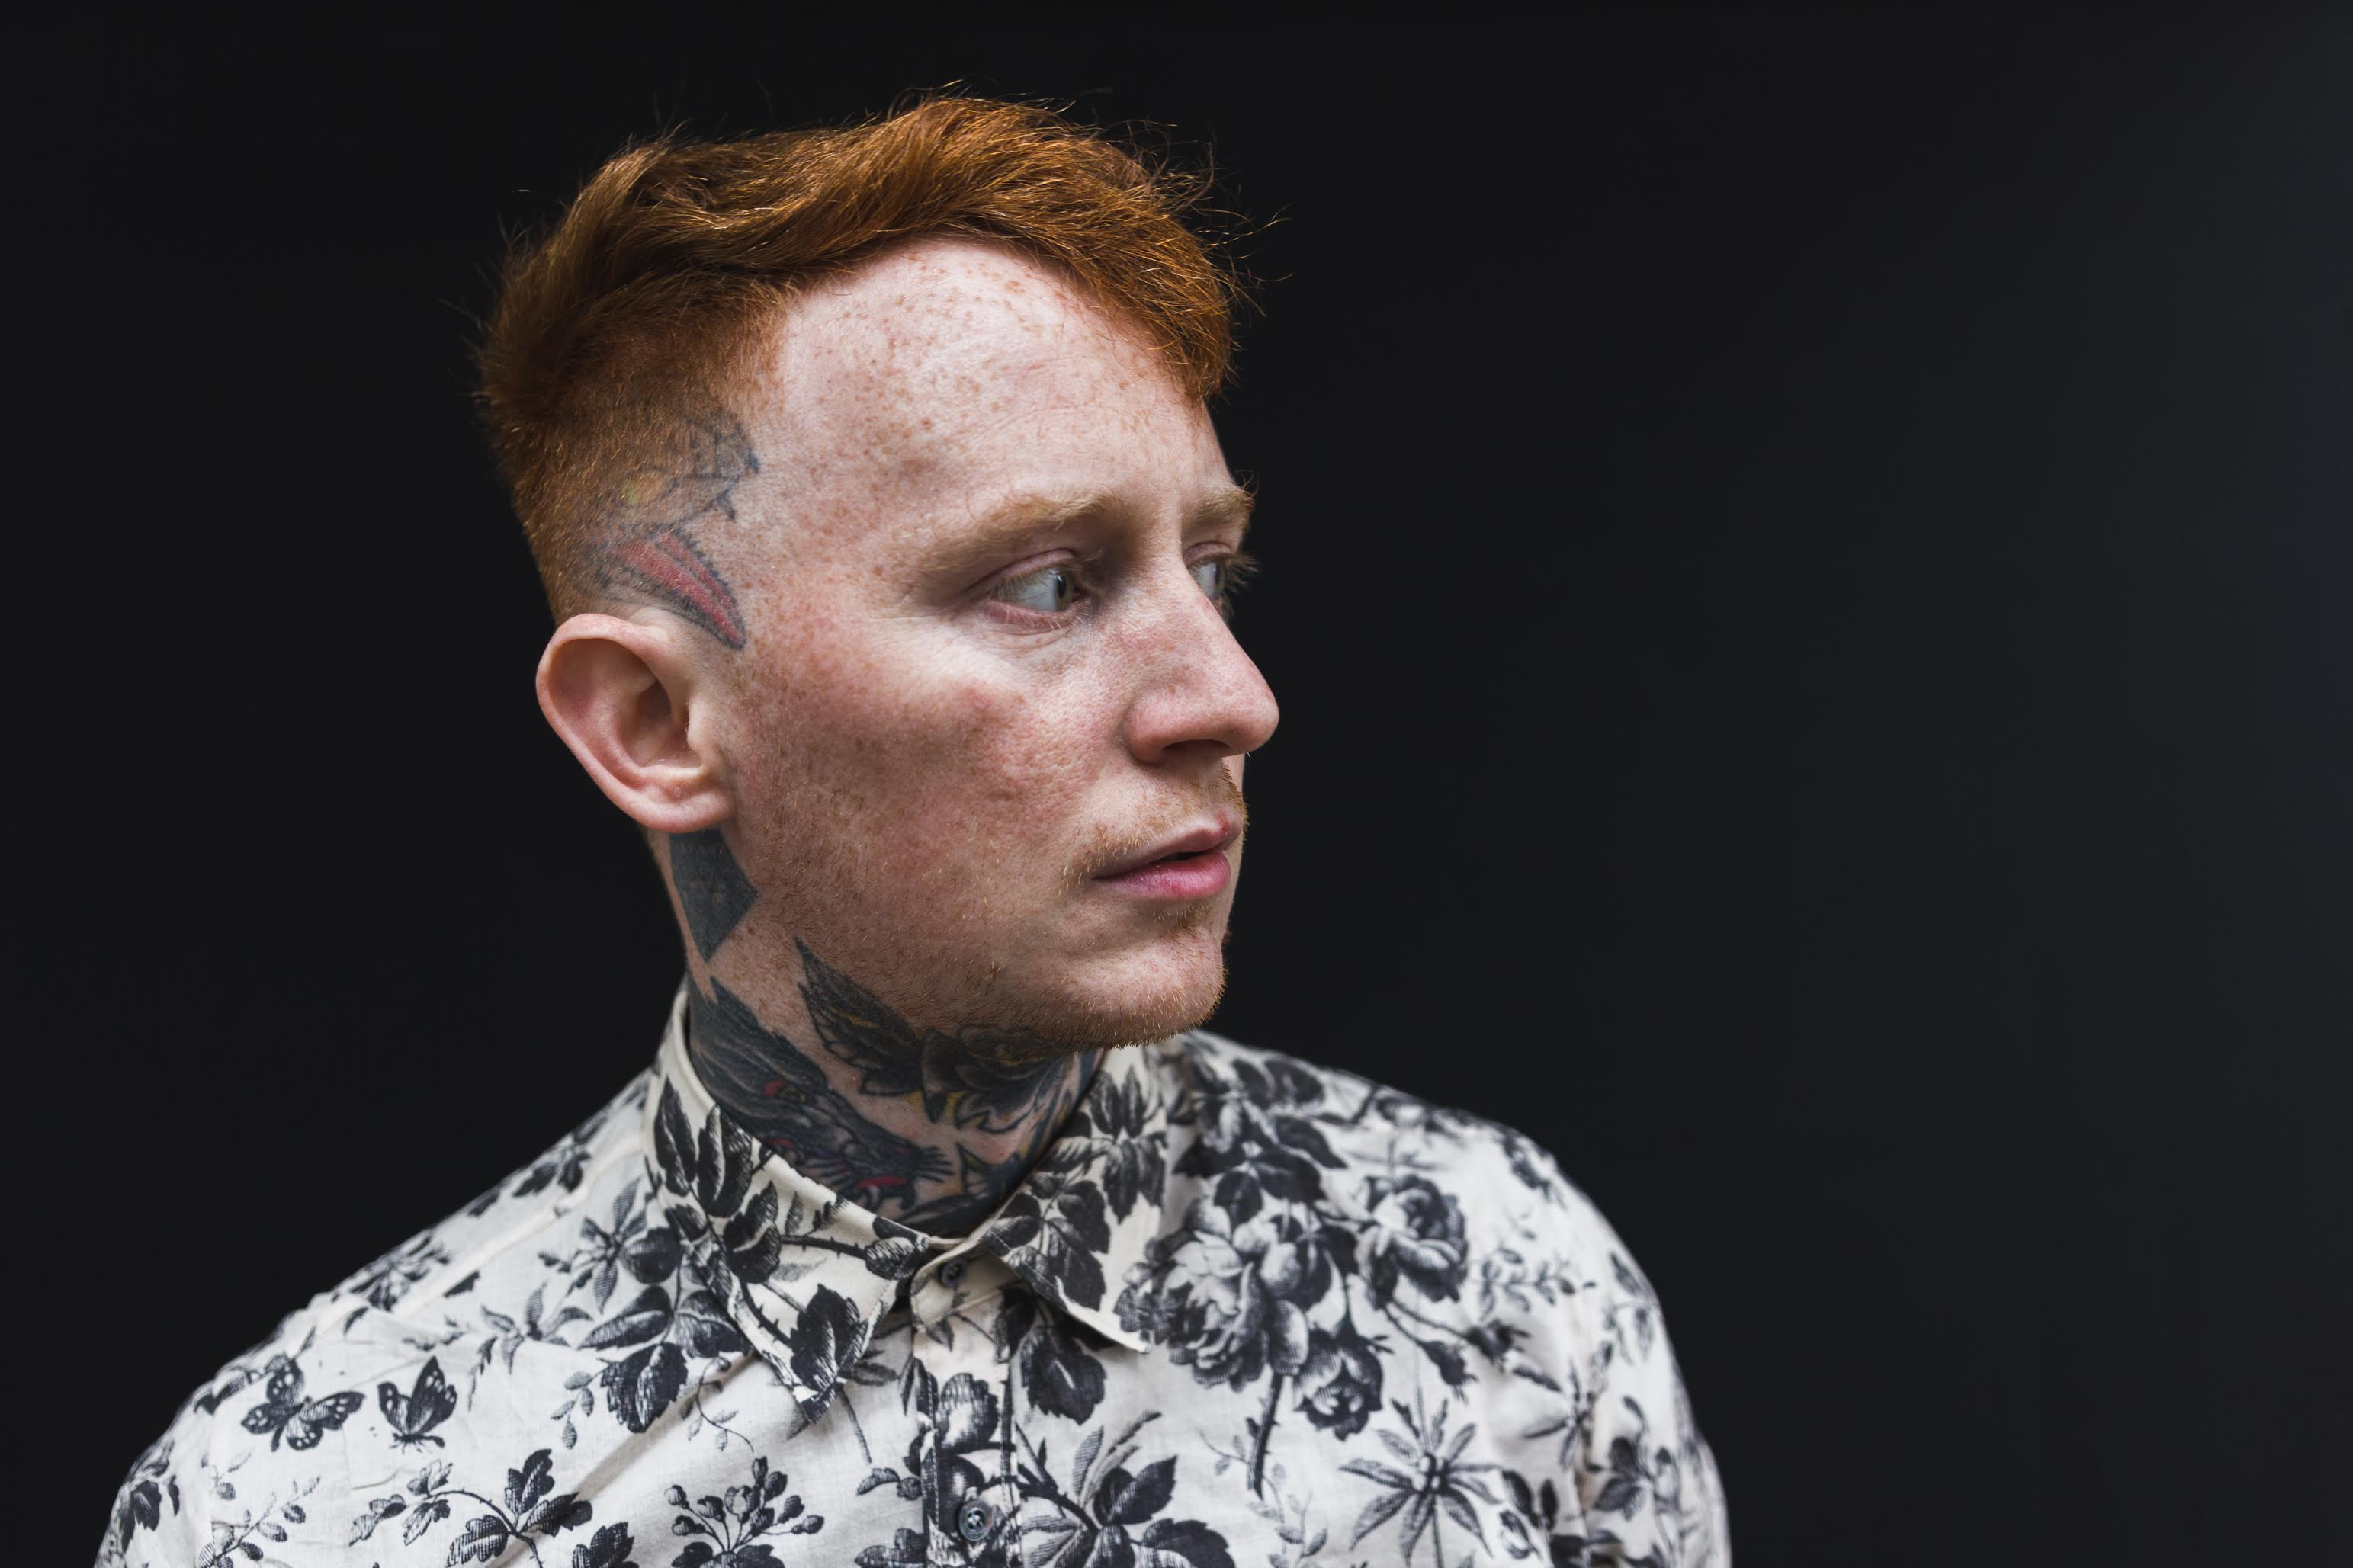 Frank Carter Pulls Out of European Tour Dates Due to Mental Health Issues